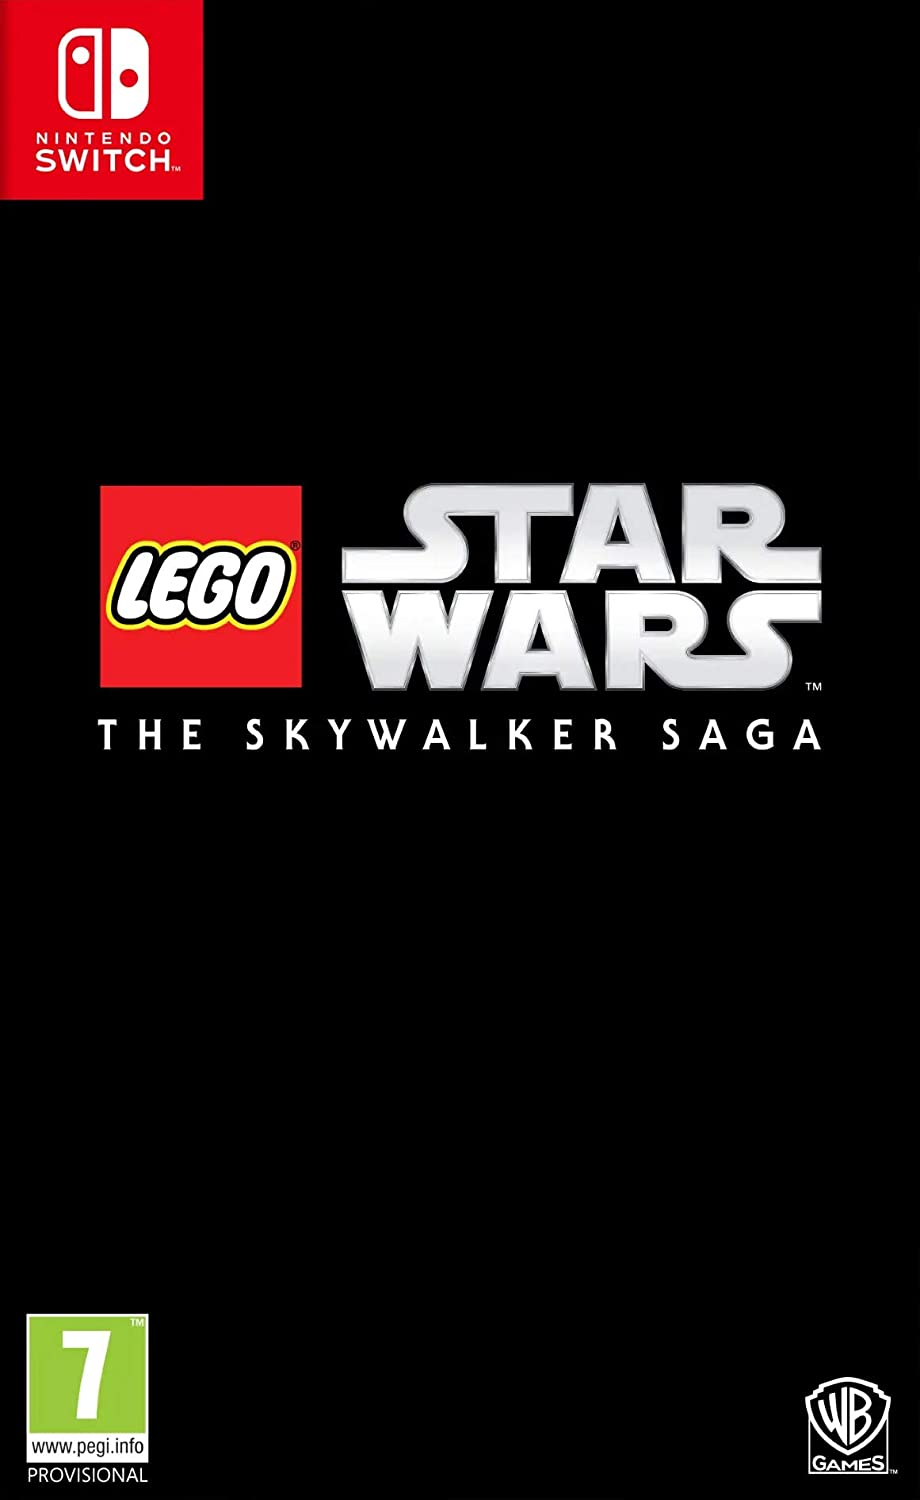 LEGO Star Wars: La Saga Skywalker: Amazon.es: Videojuegos